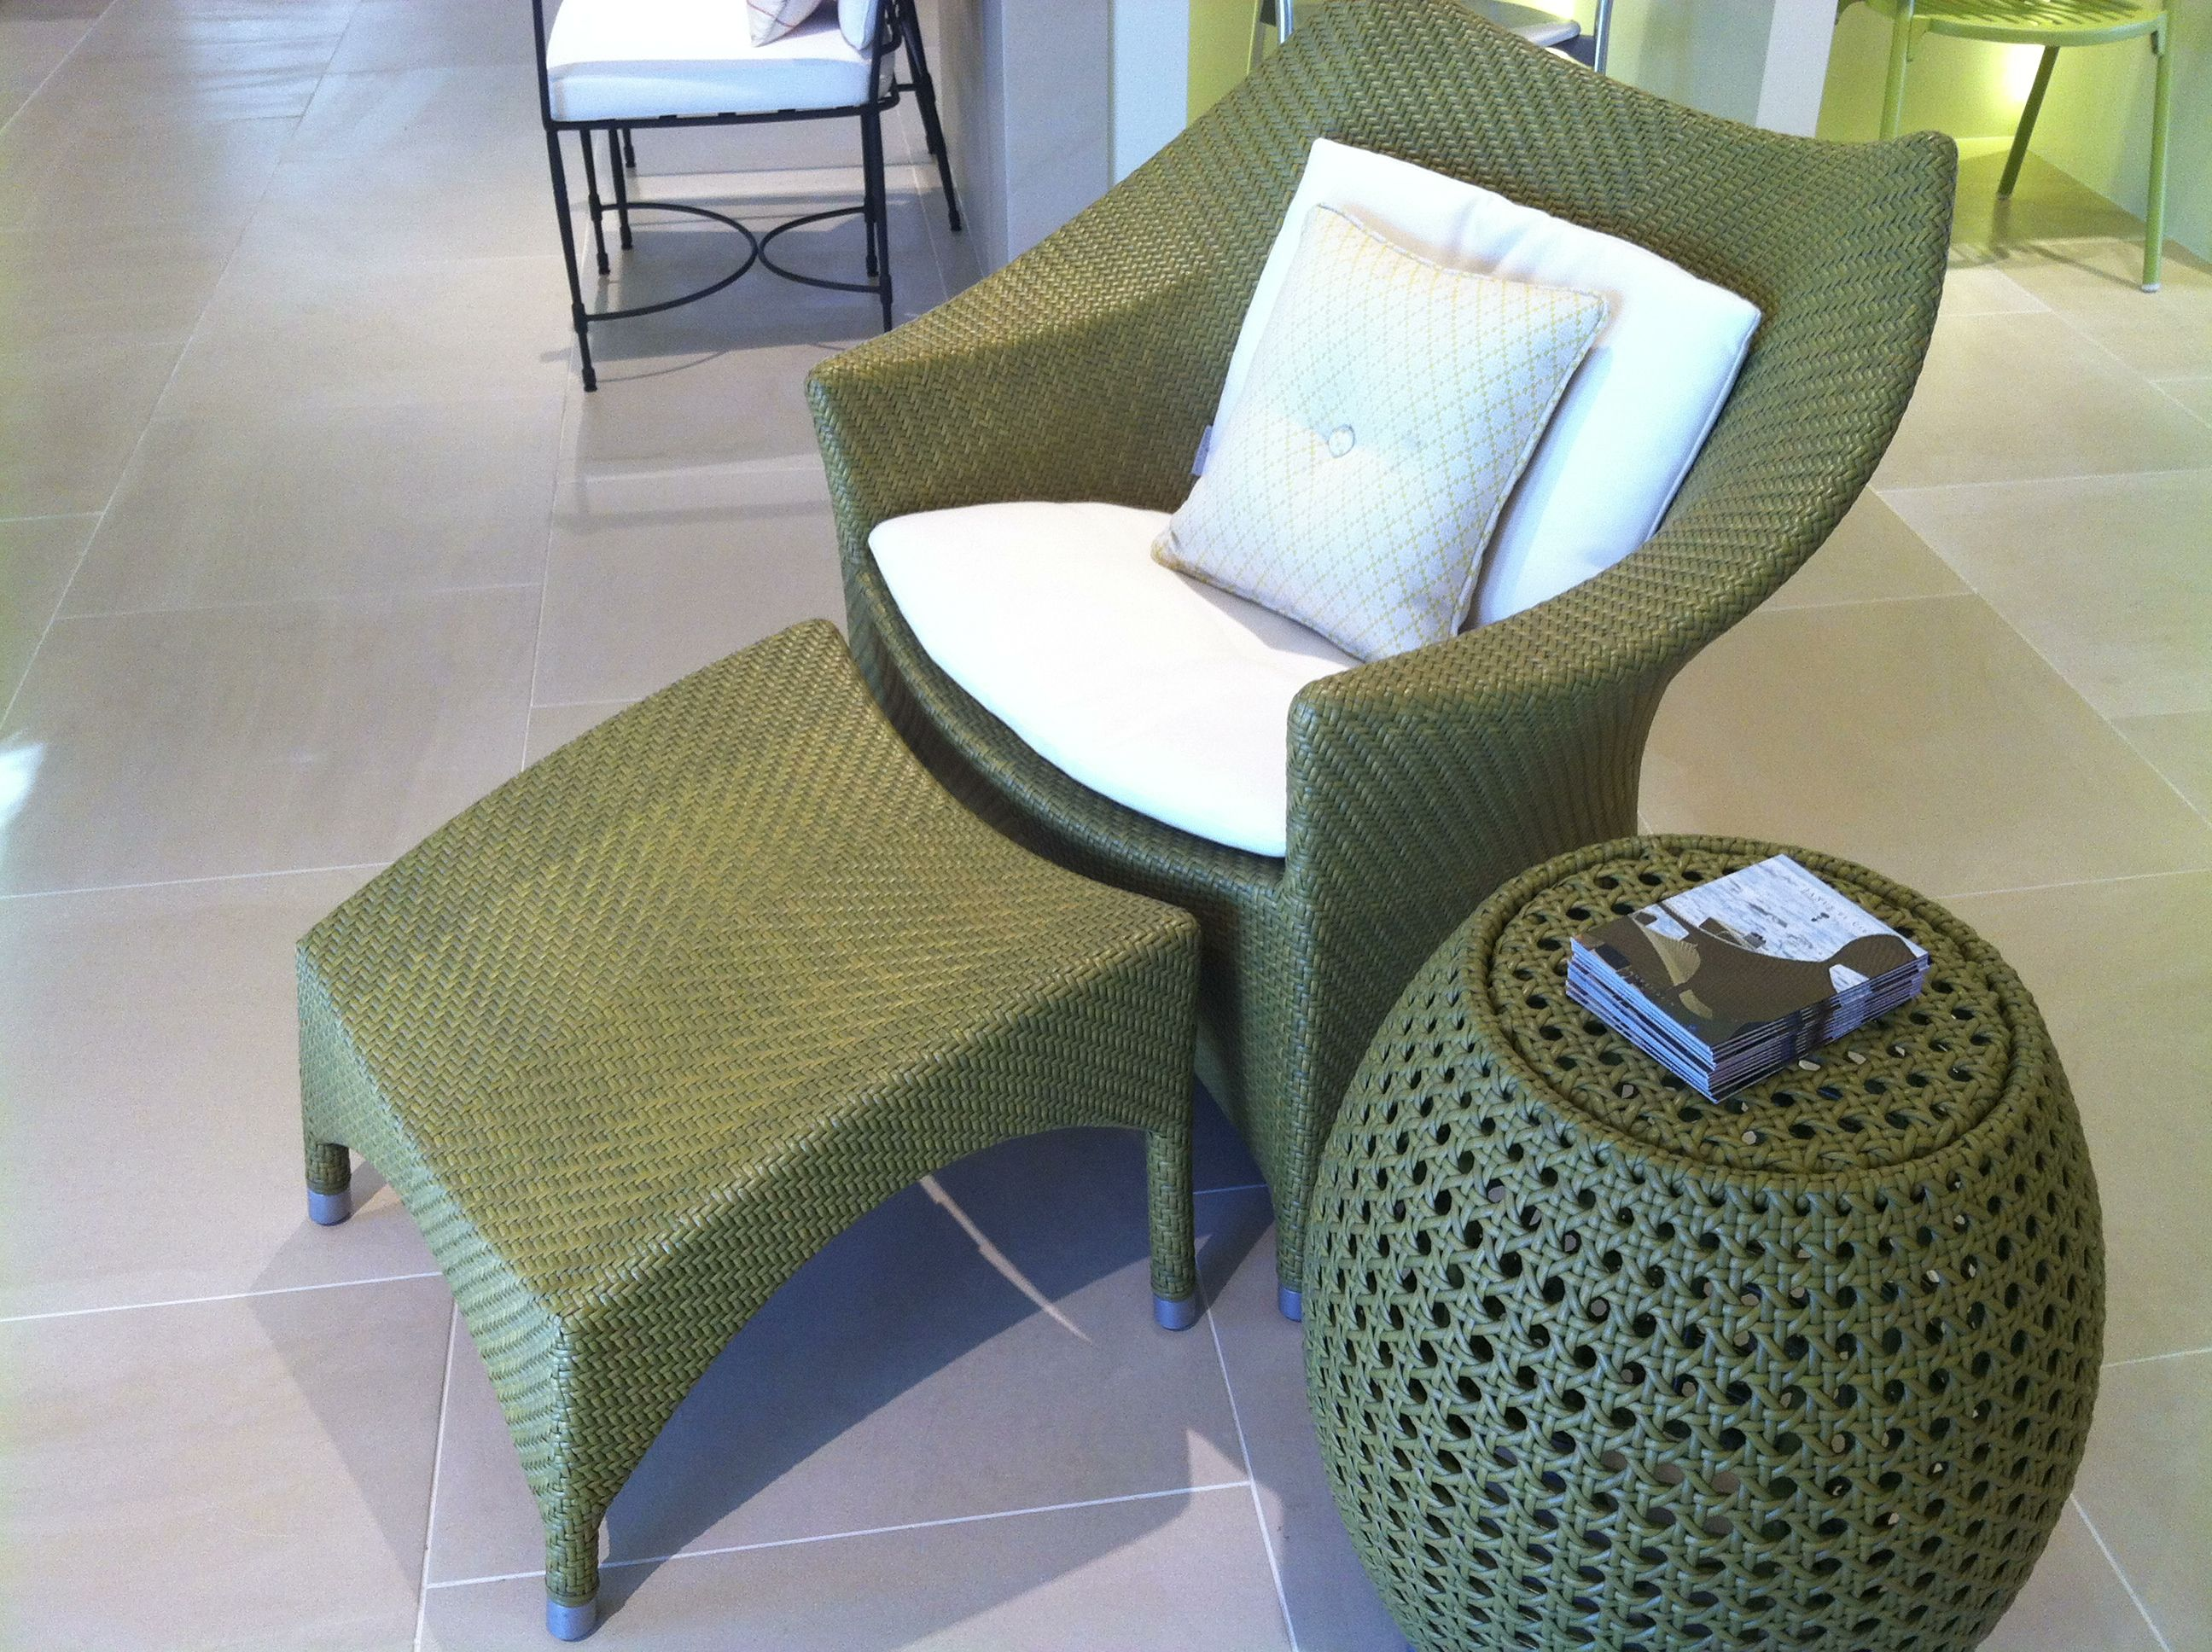 Fun Lounge Chairs janus et cie-atlanta-amari lounge chair! so comfortable and fun in